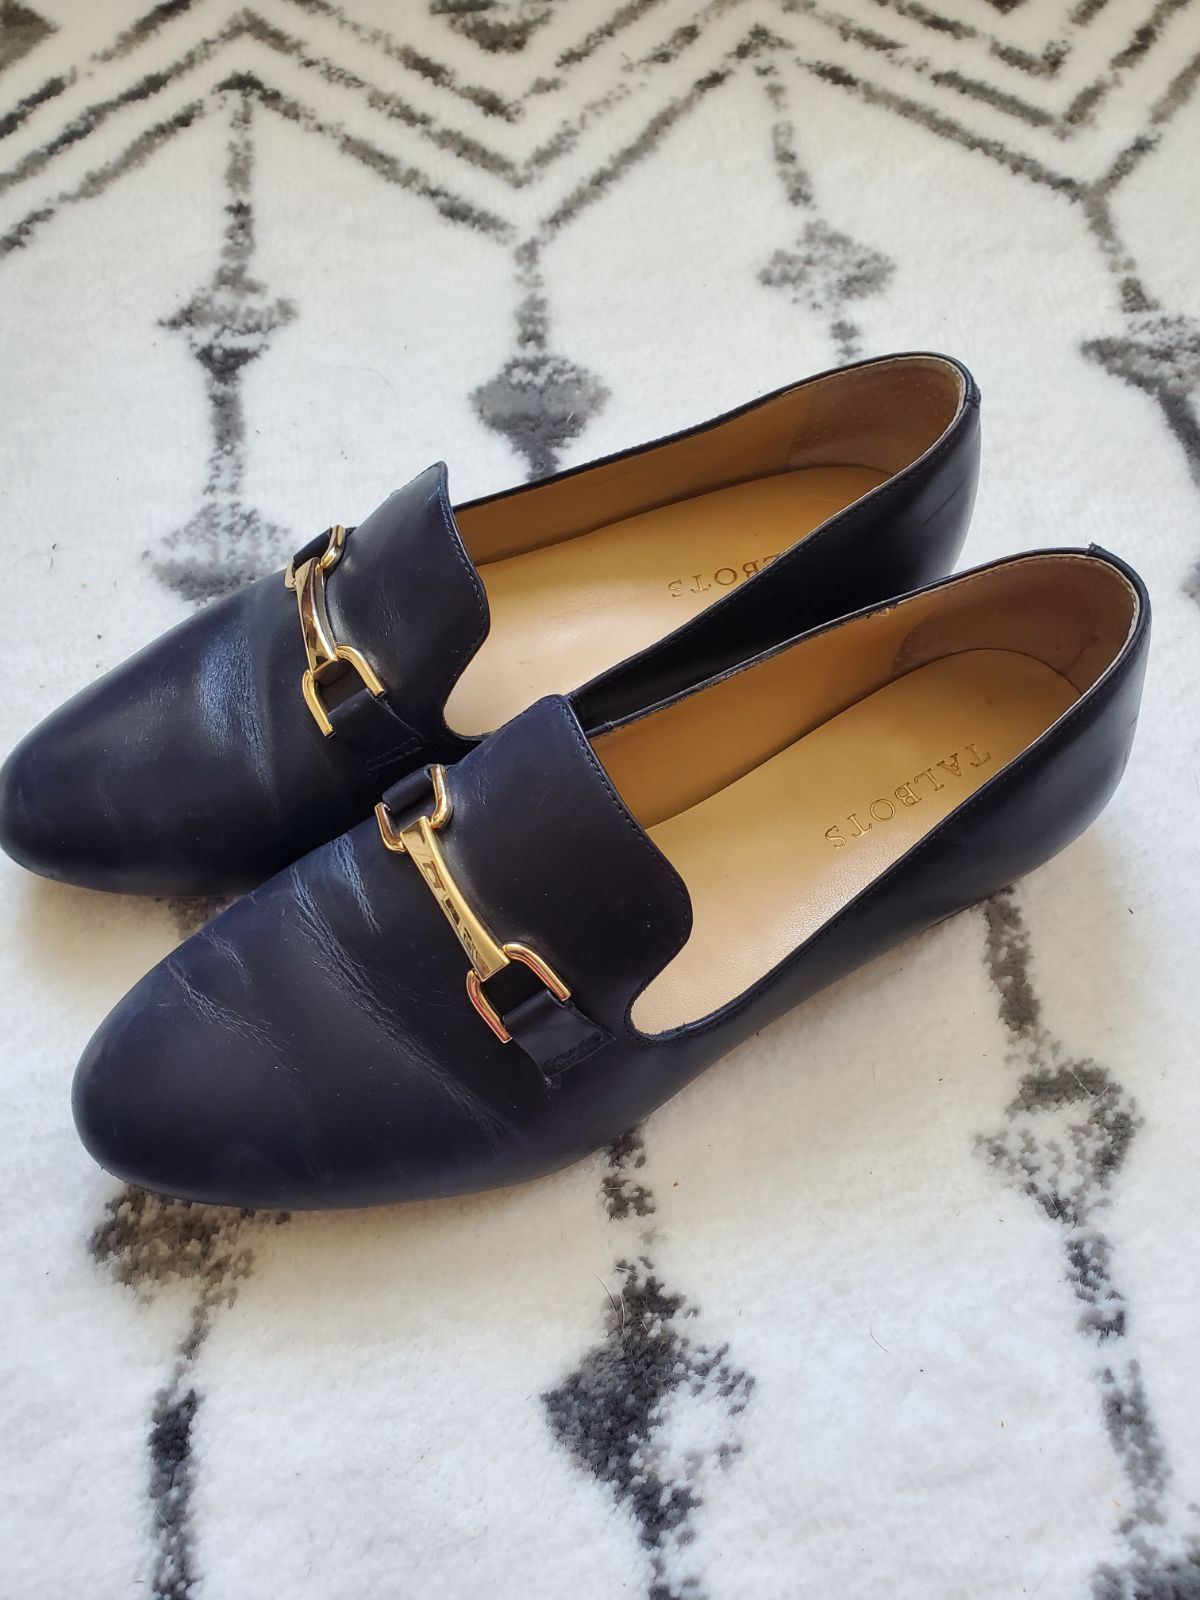 Talbots blue loafer and gold buckle